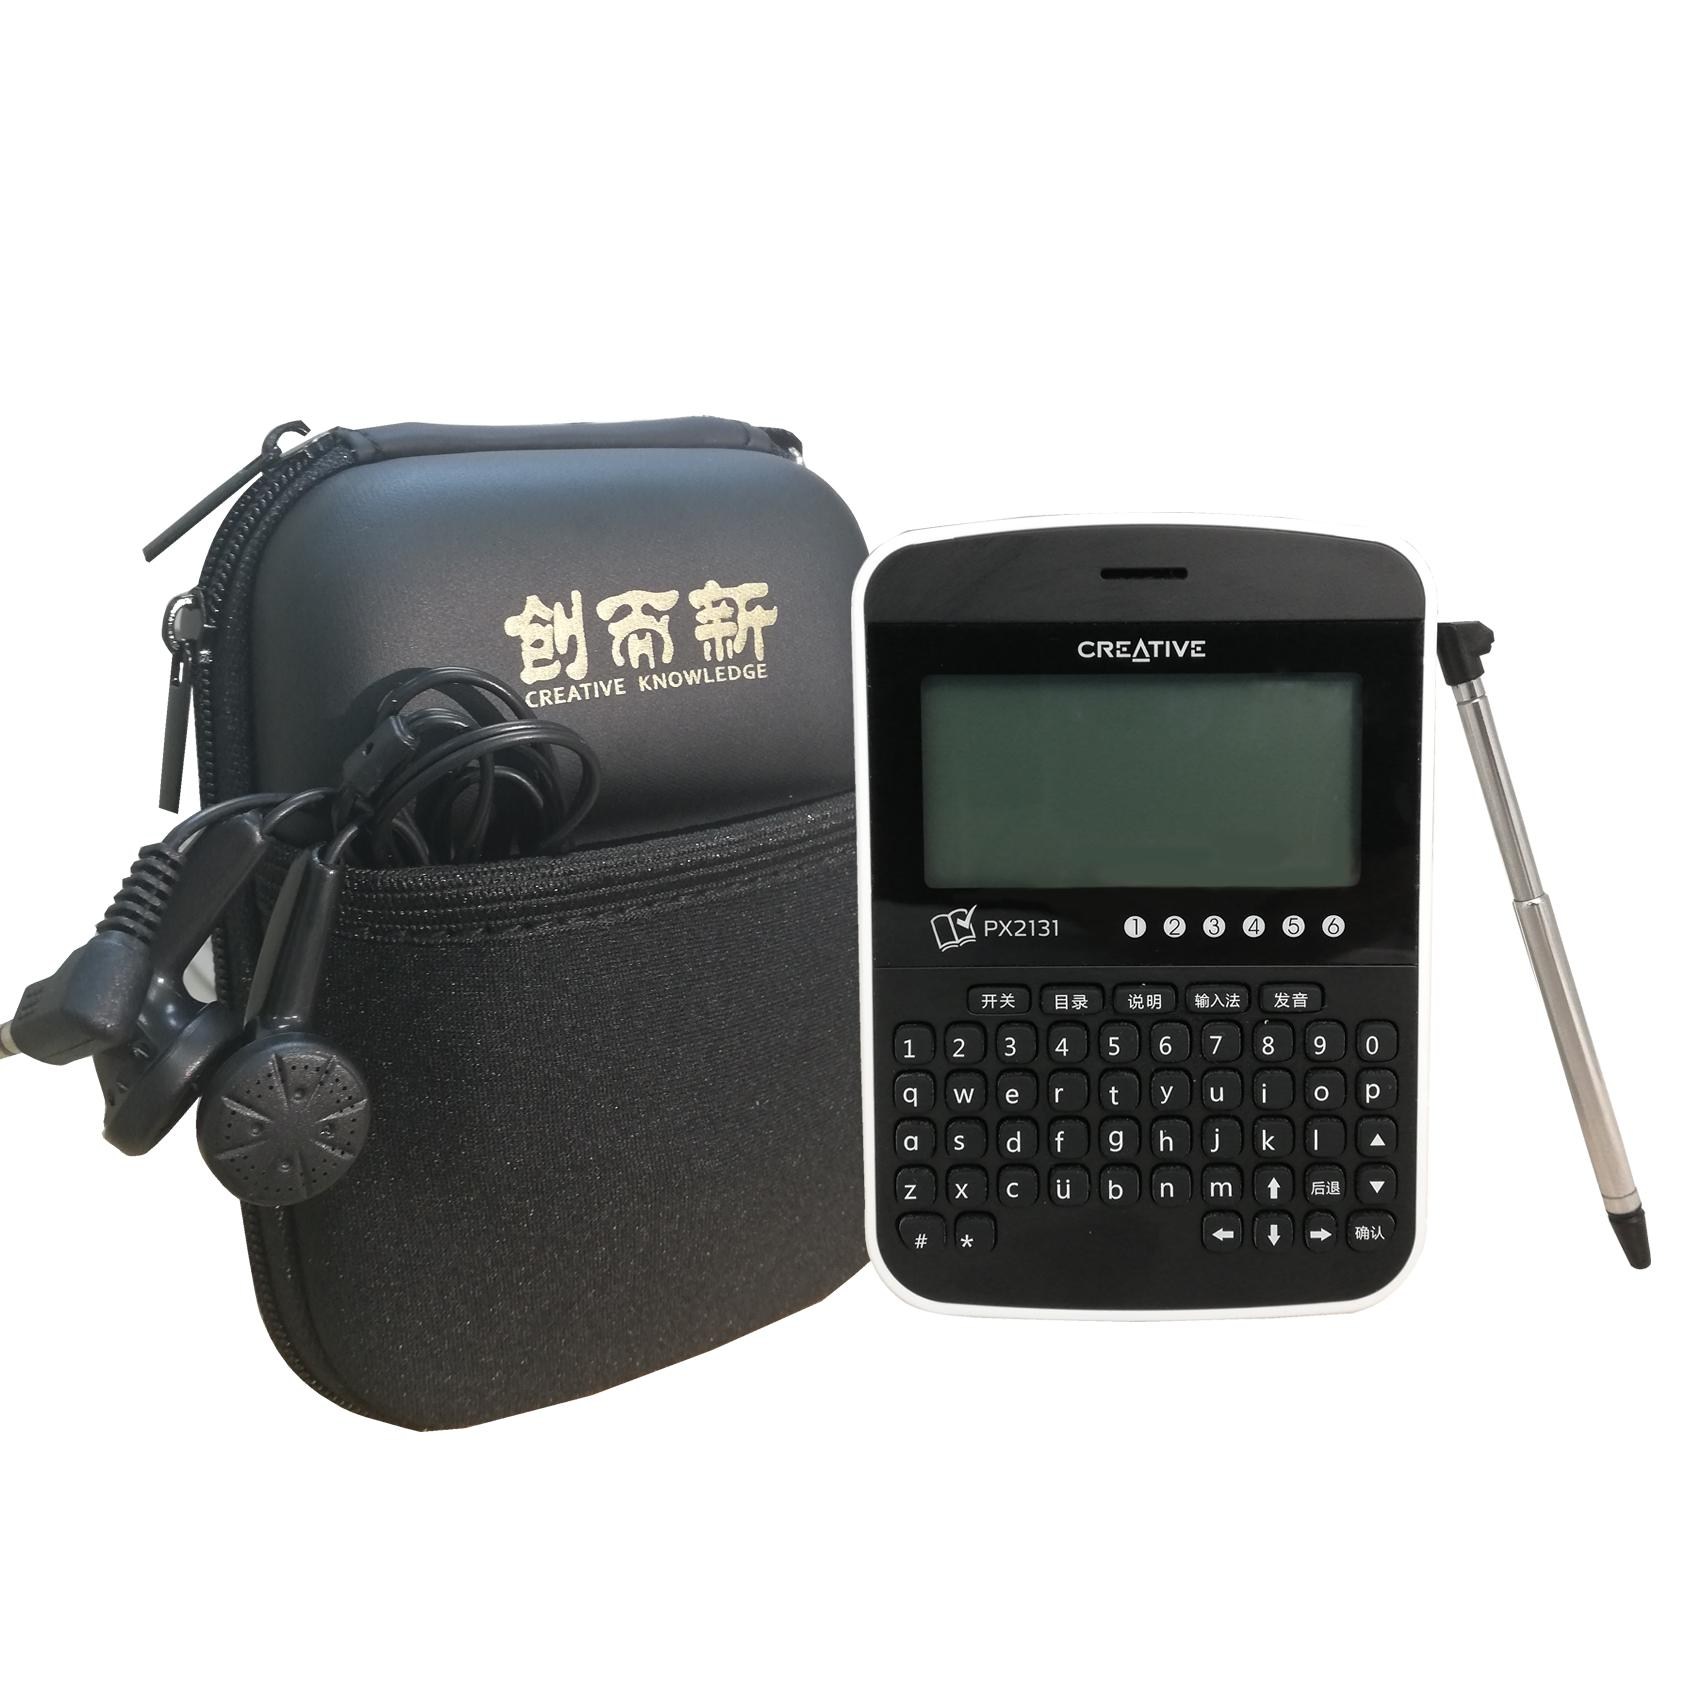 HansVision eDictionary PX2131 + Protective Case